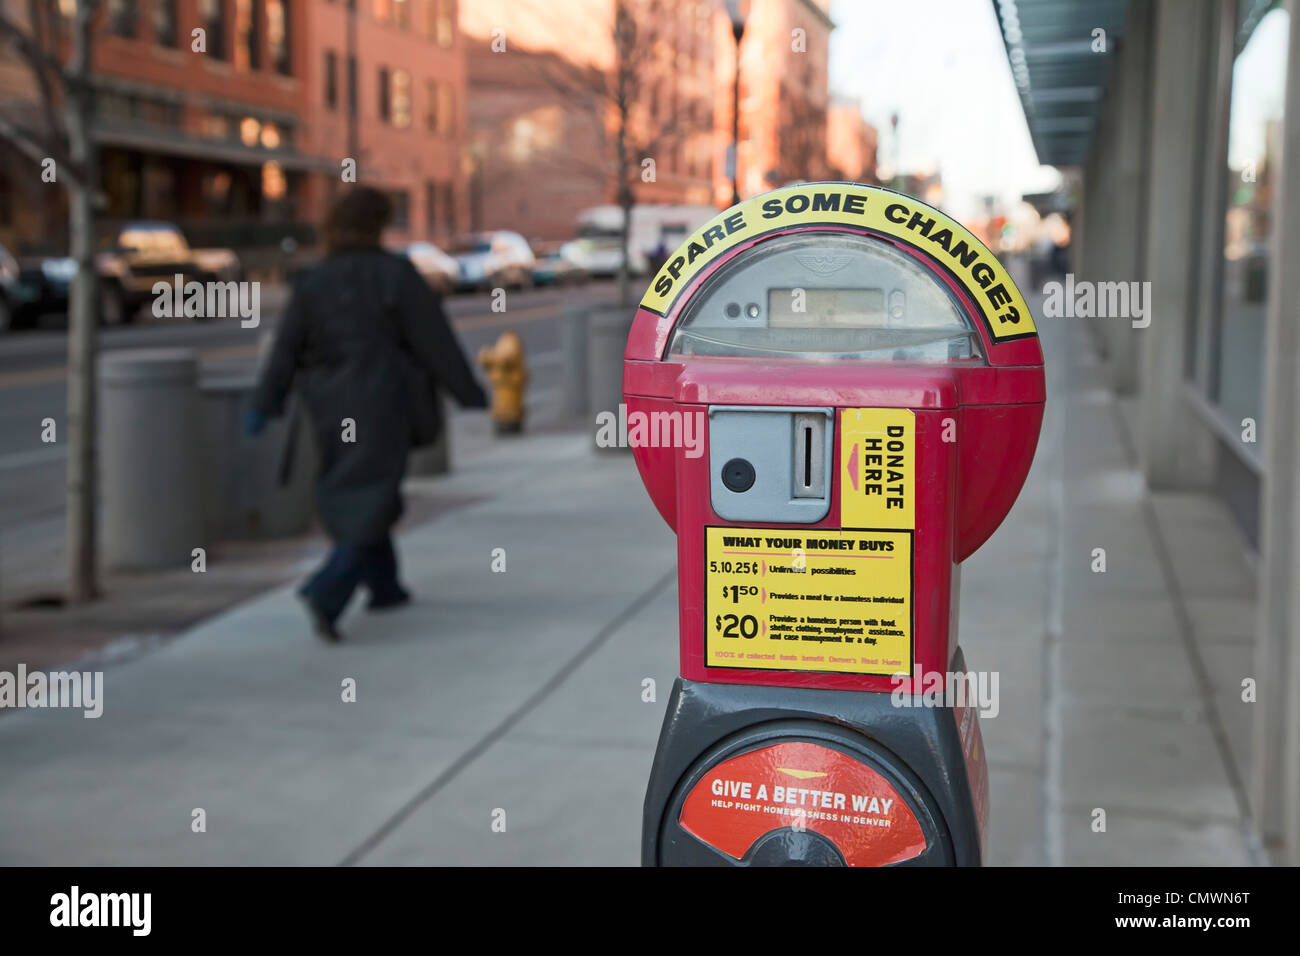 Parking Meter Converted to Collect Spare Change to Help the Homeless - Stock Image